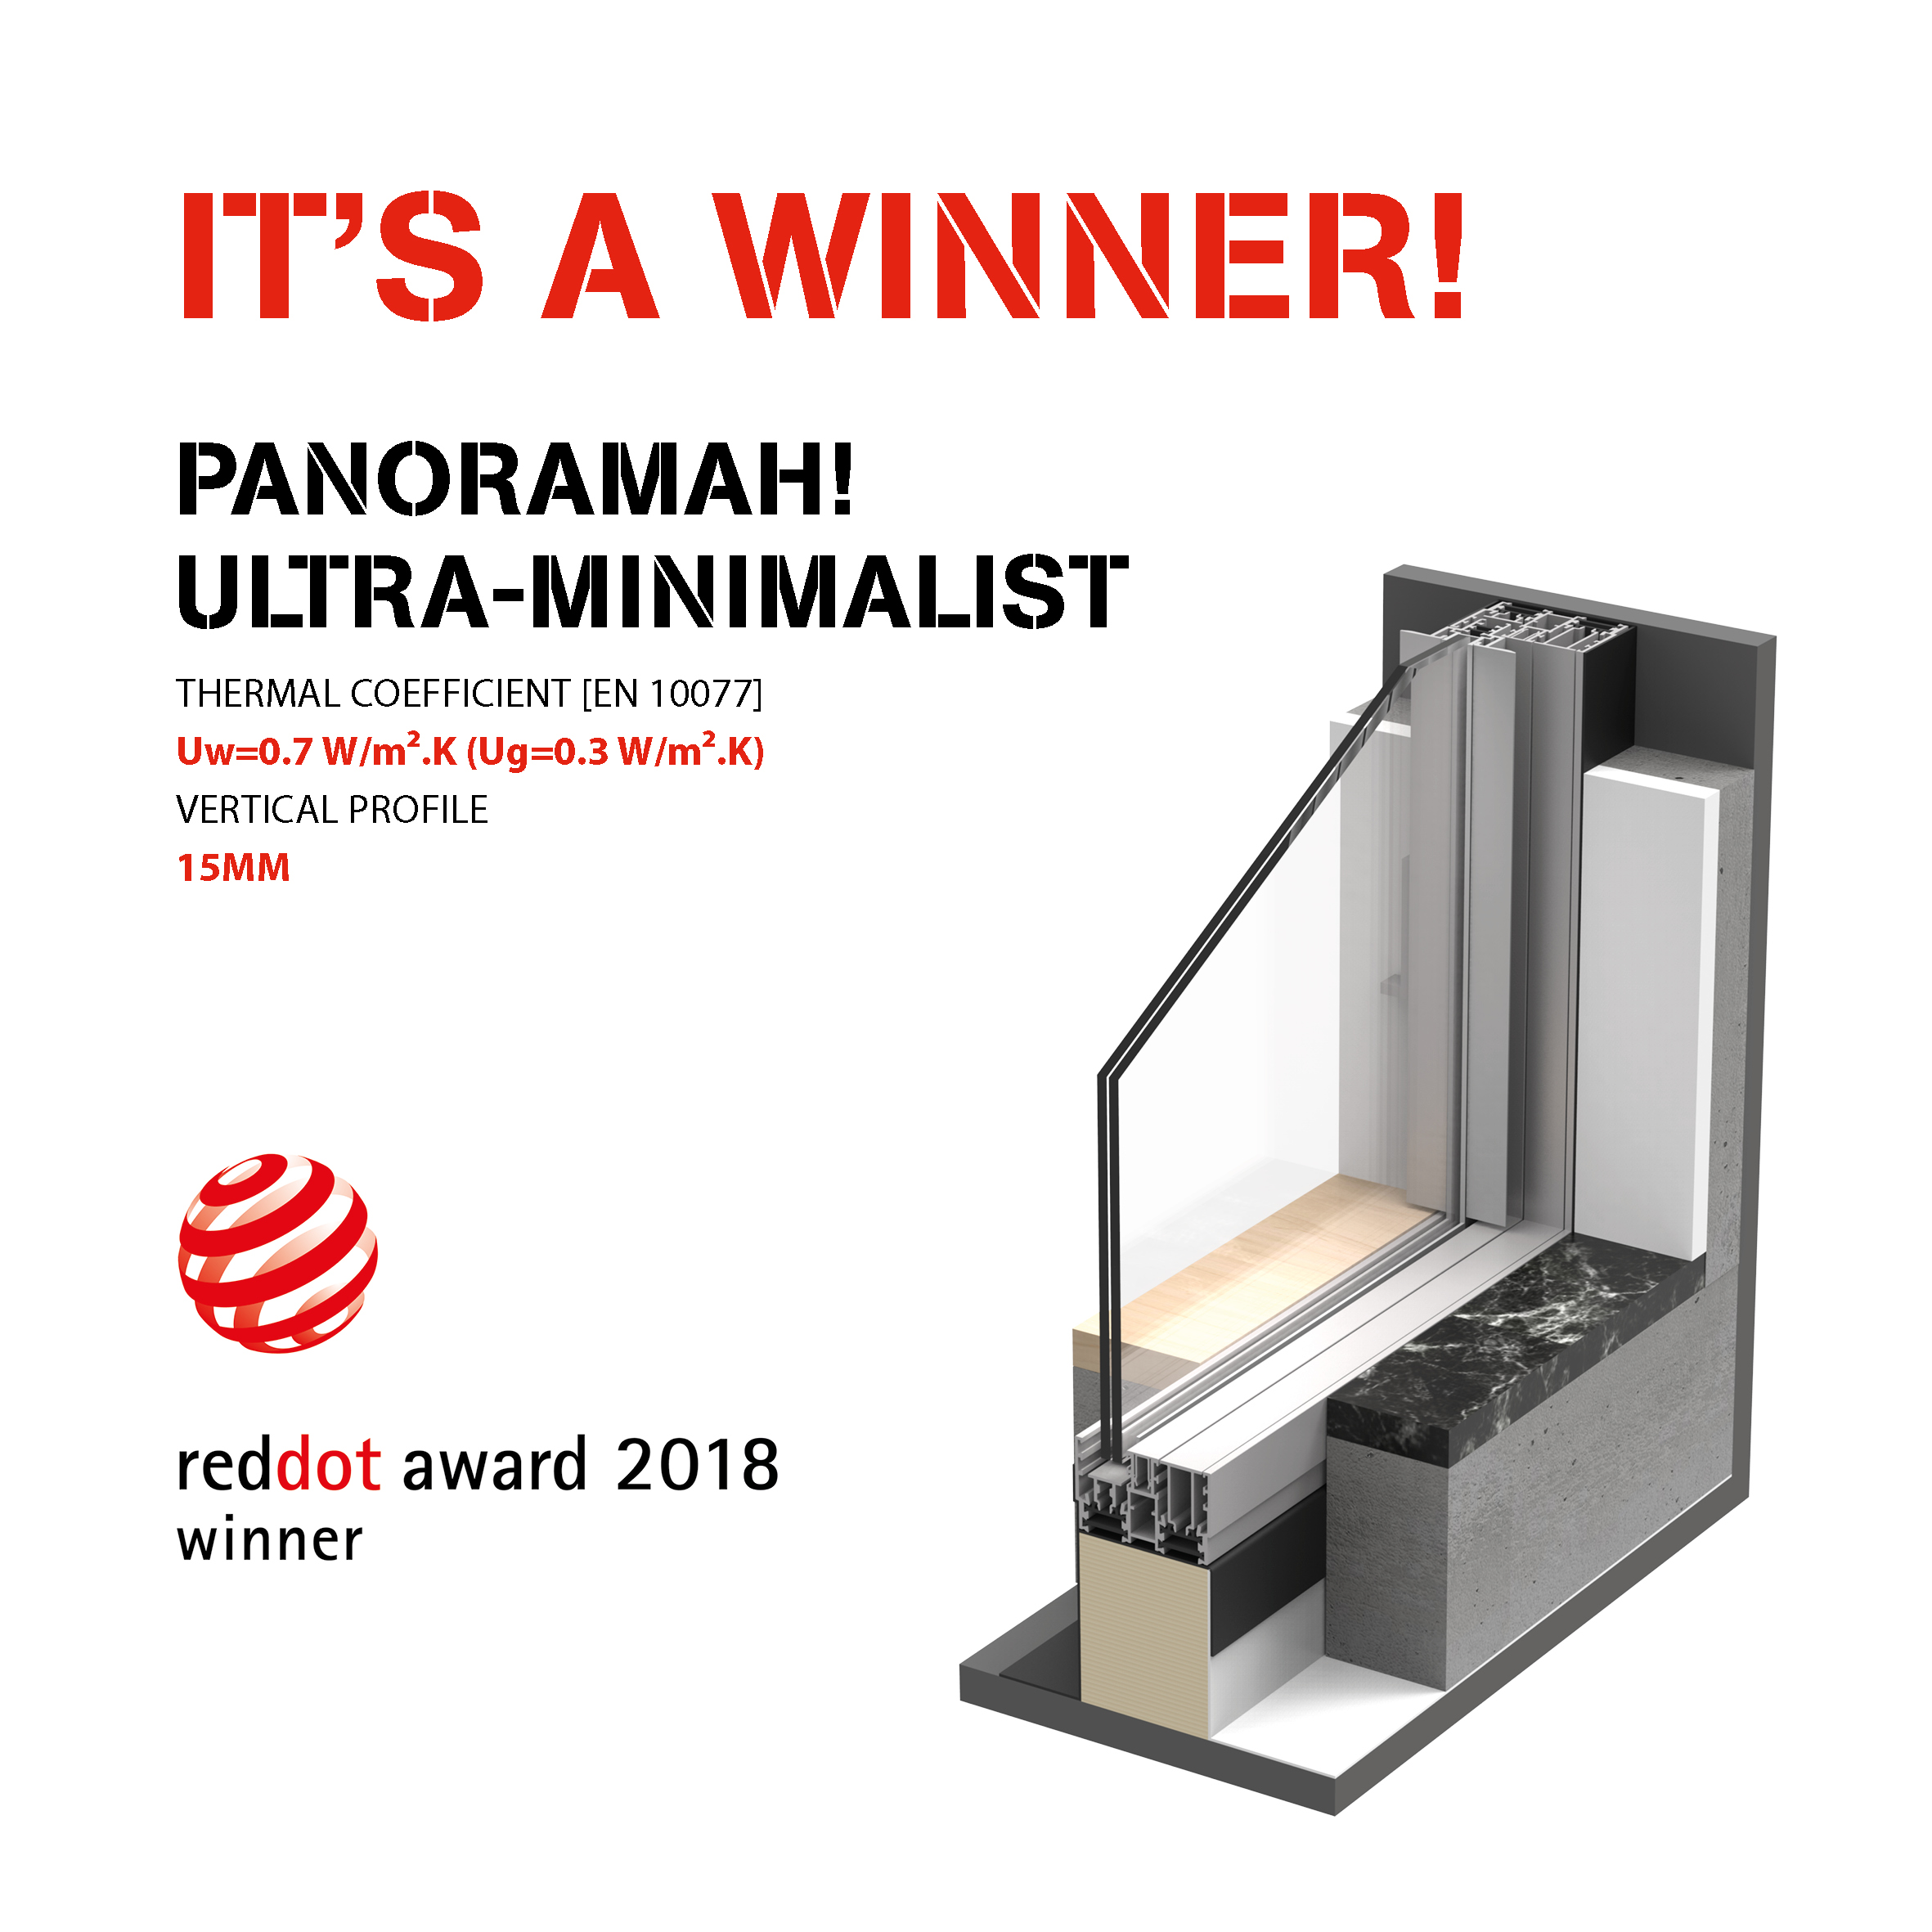 panoramah! Ultra-Minimalist awarded with the Red Dot Design Award 2018